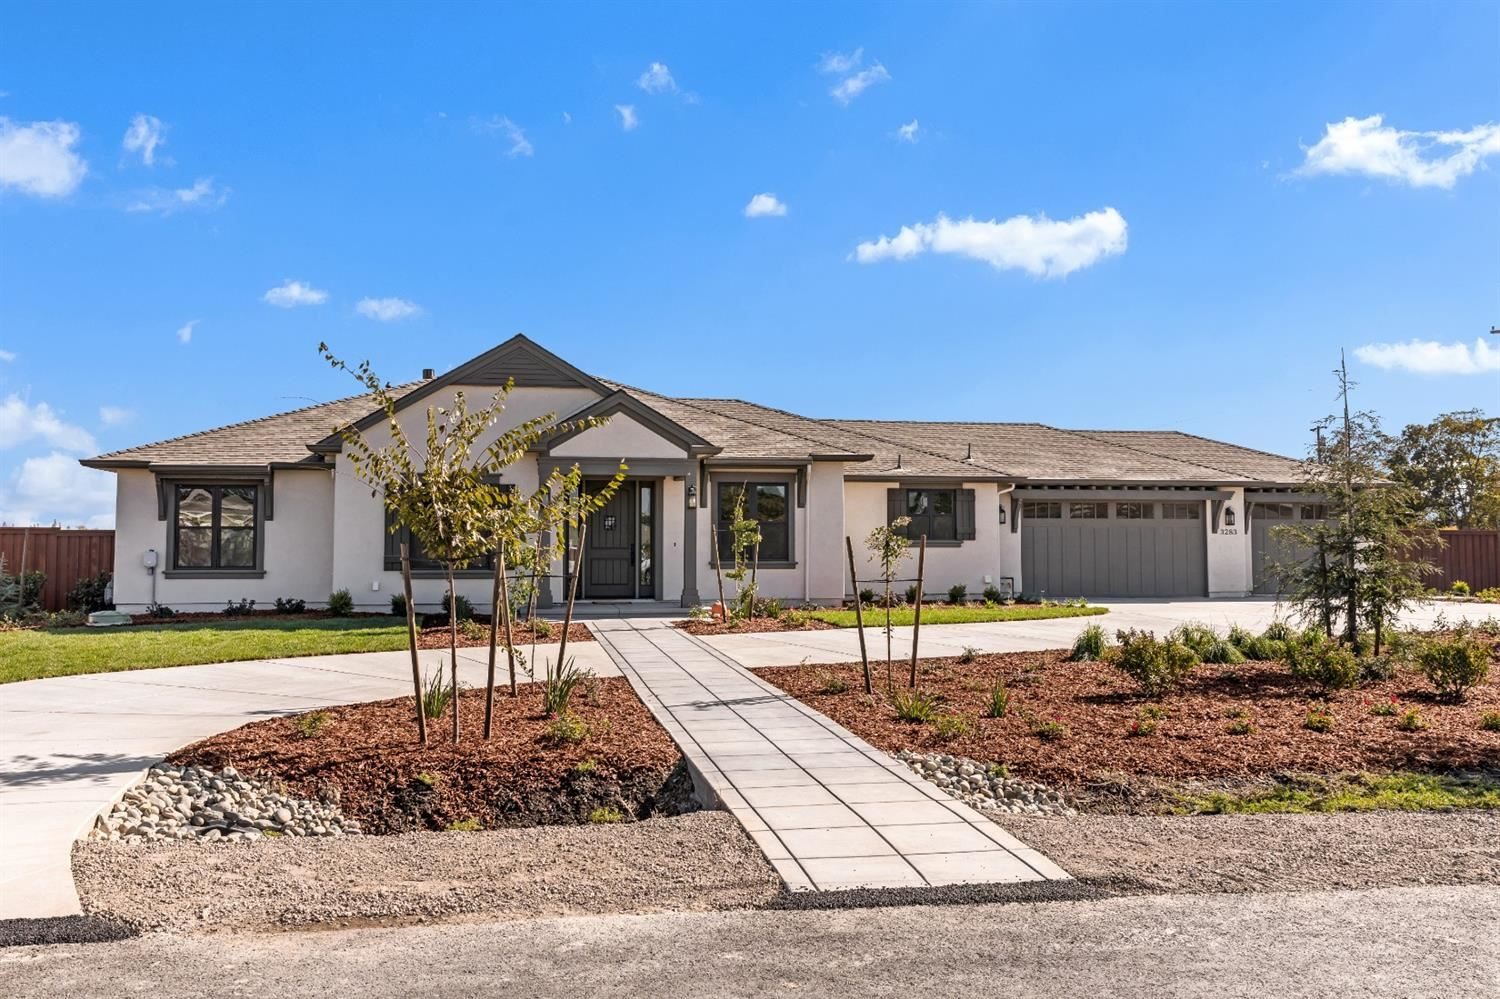 Photo of 3283 Gabri Court, West Sacramento, CA 95691 (MLS # 20059994)